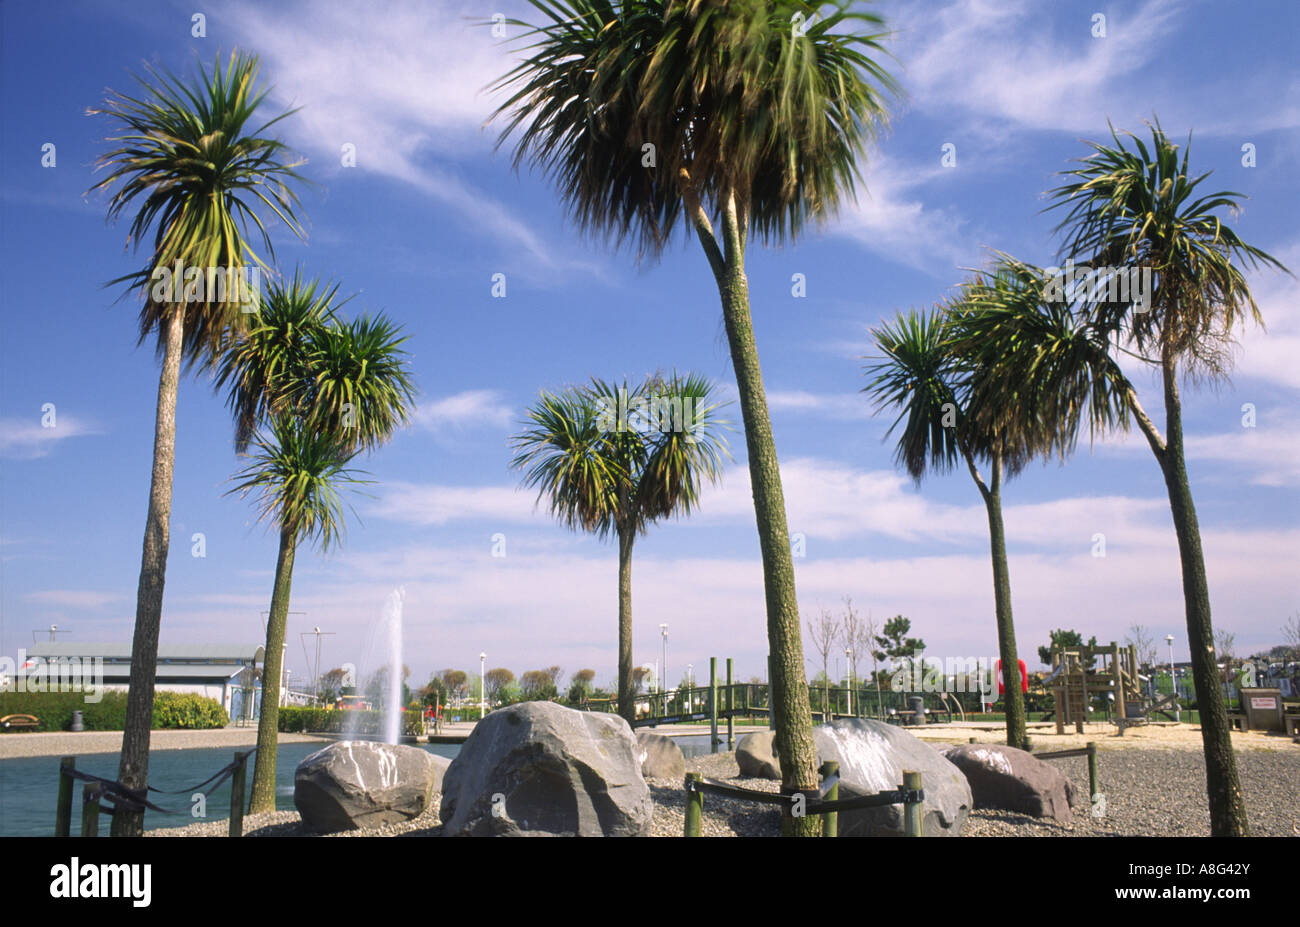 Palm trees in Agnew Park on the seafront Stranraer Scotland UK - Stock Image